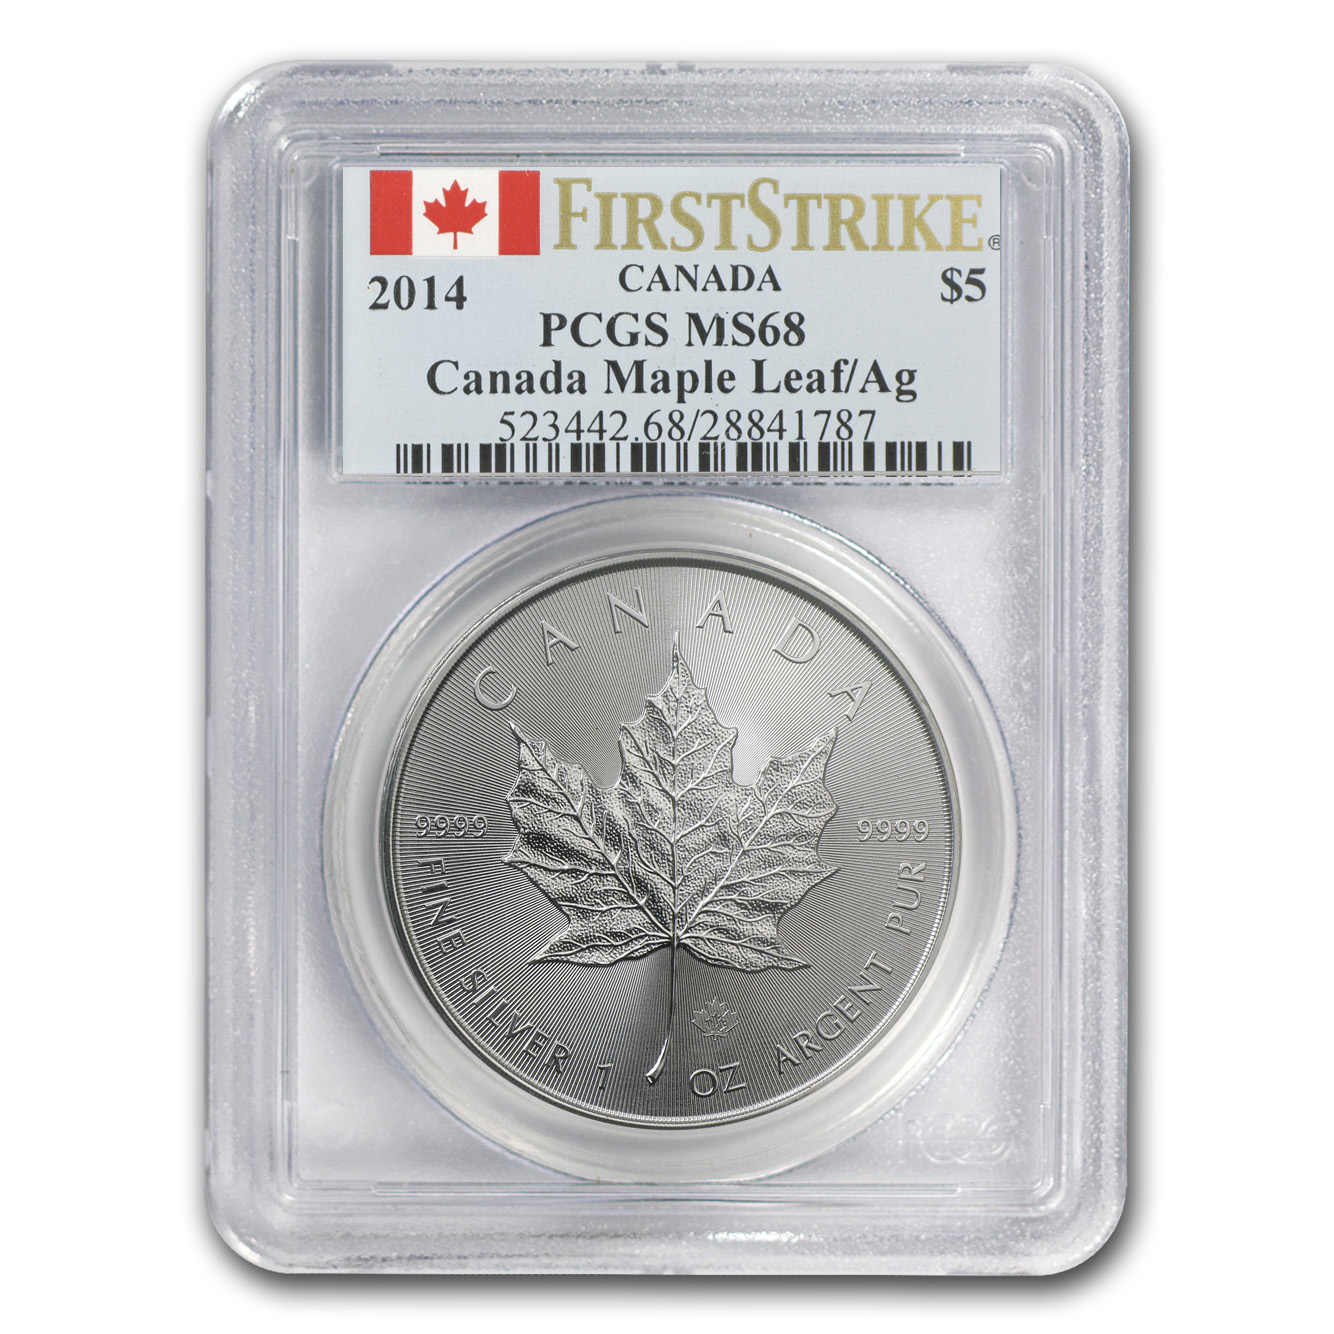 2014 1 oz Silver Canadian Maple Leaf MS-68 PCGS First Strike